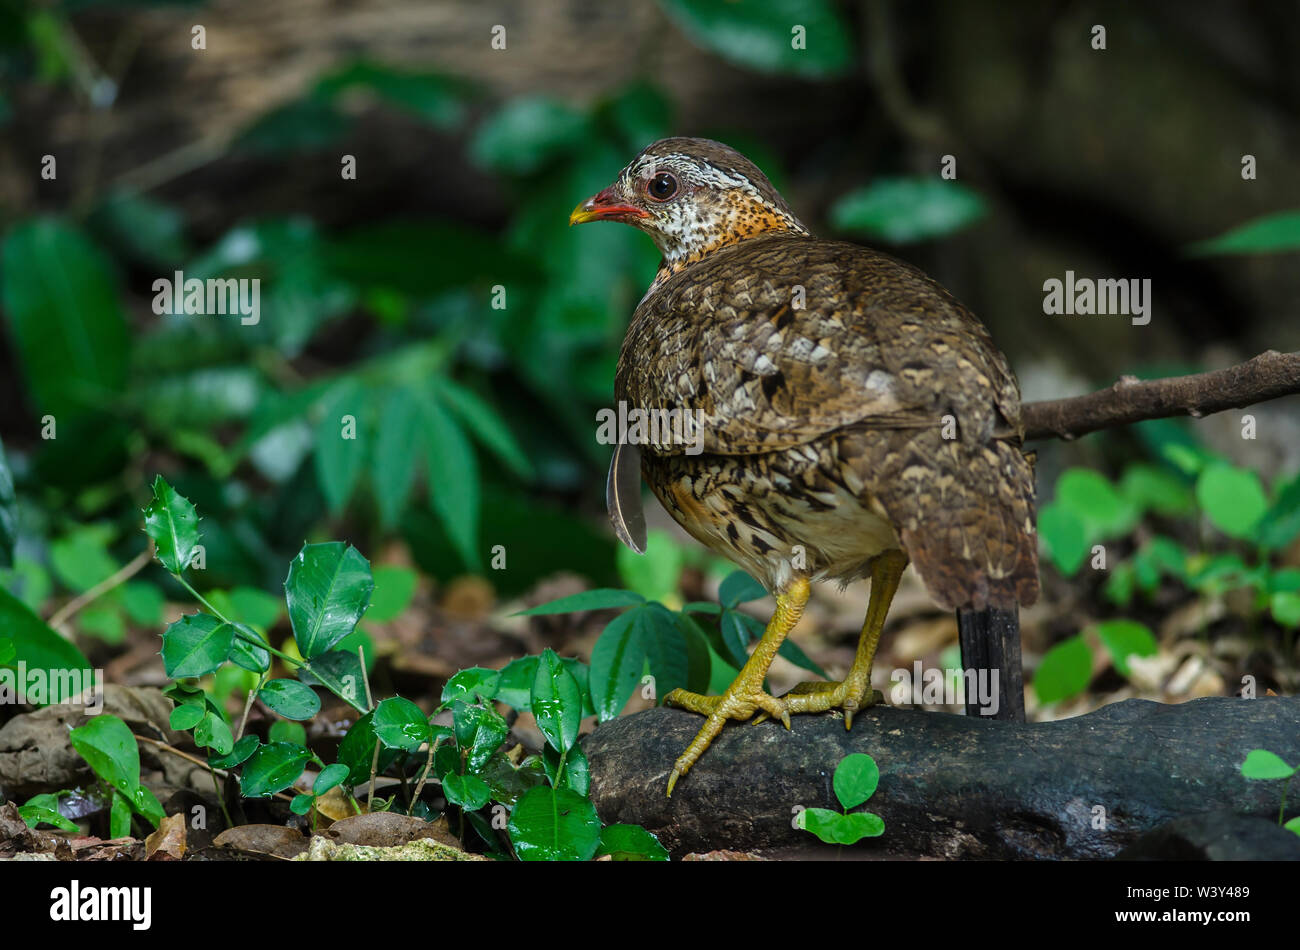 Green-legged partridge, Scaly-breasted partridge, Green-legged hill in nature, Thailand - Stock Image